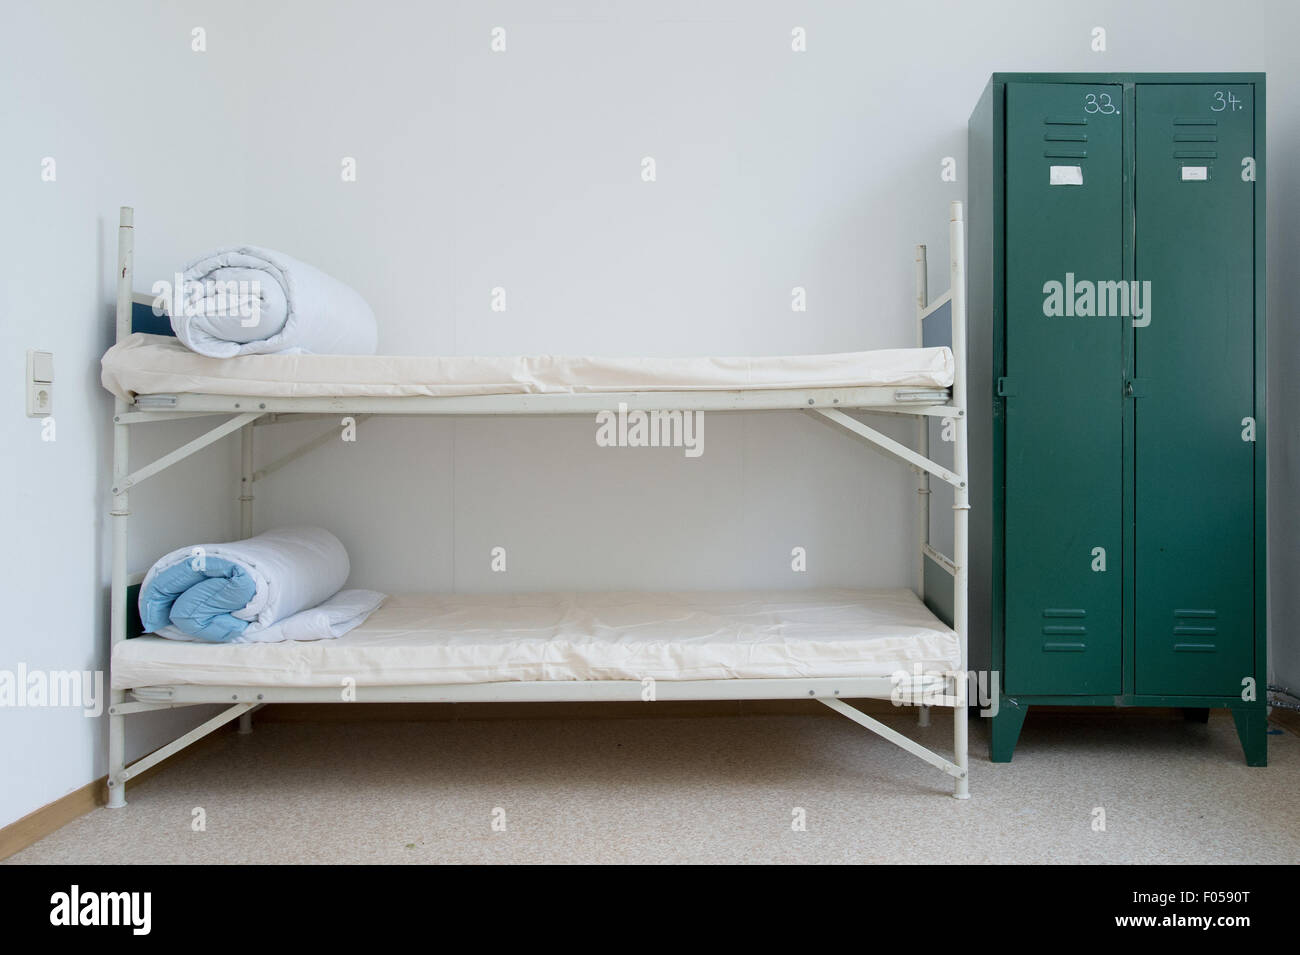 Picture of: Leipzig Germany 7th Aug 2015 A Room With Double Bunk Beds In Stock Photo Alamy